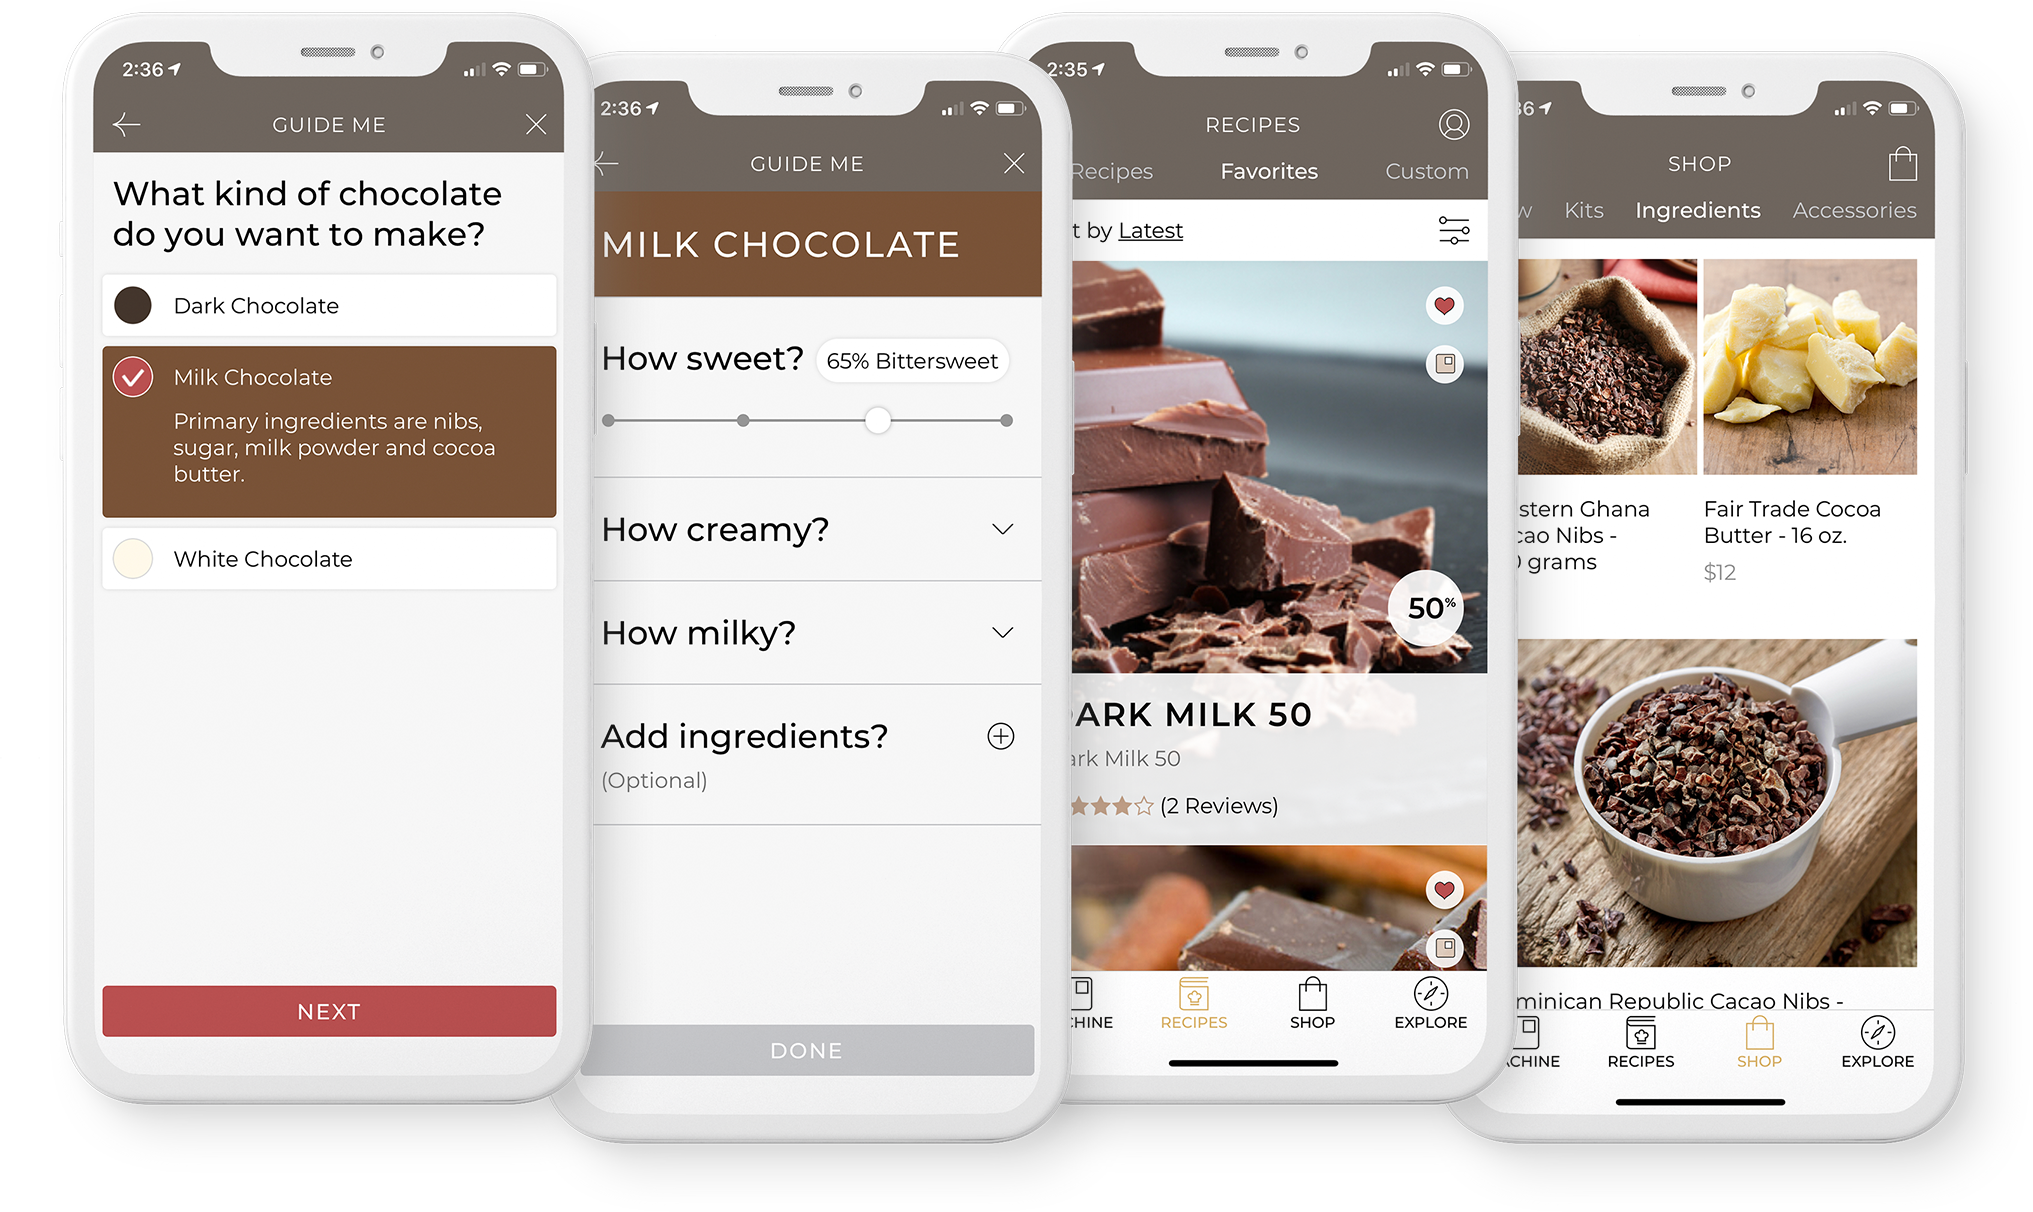 CocoTerra mobile app allows you to select recipes, buy ingredients and track your chocolate making.